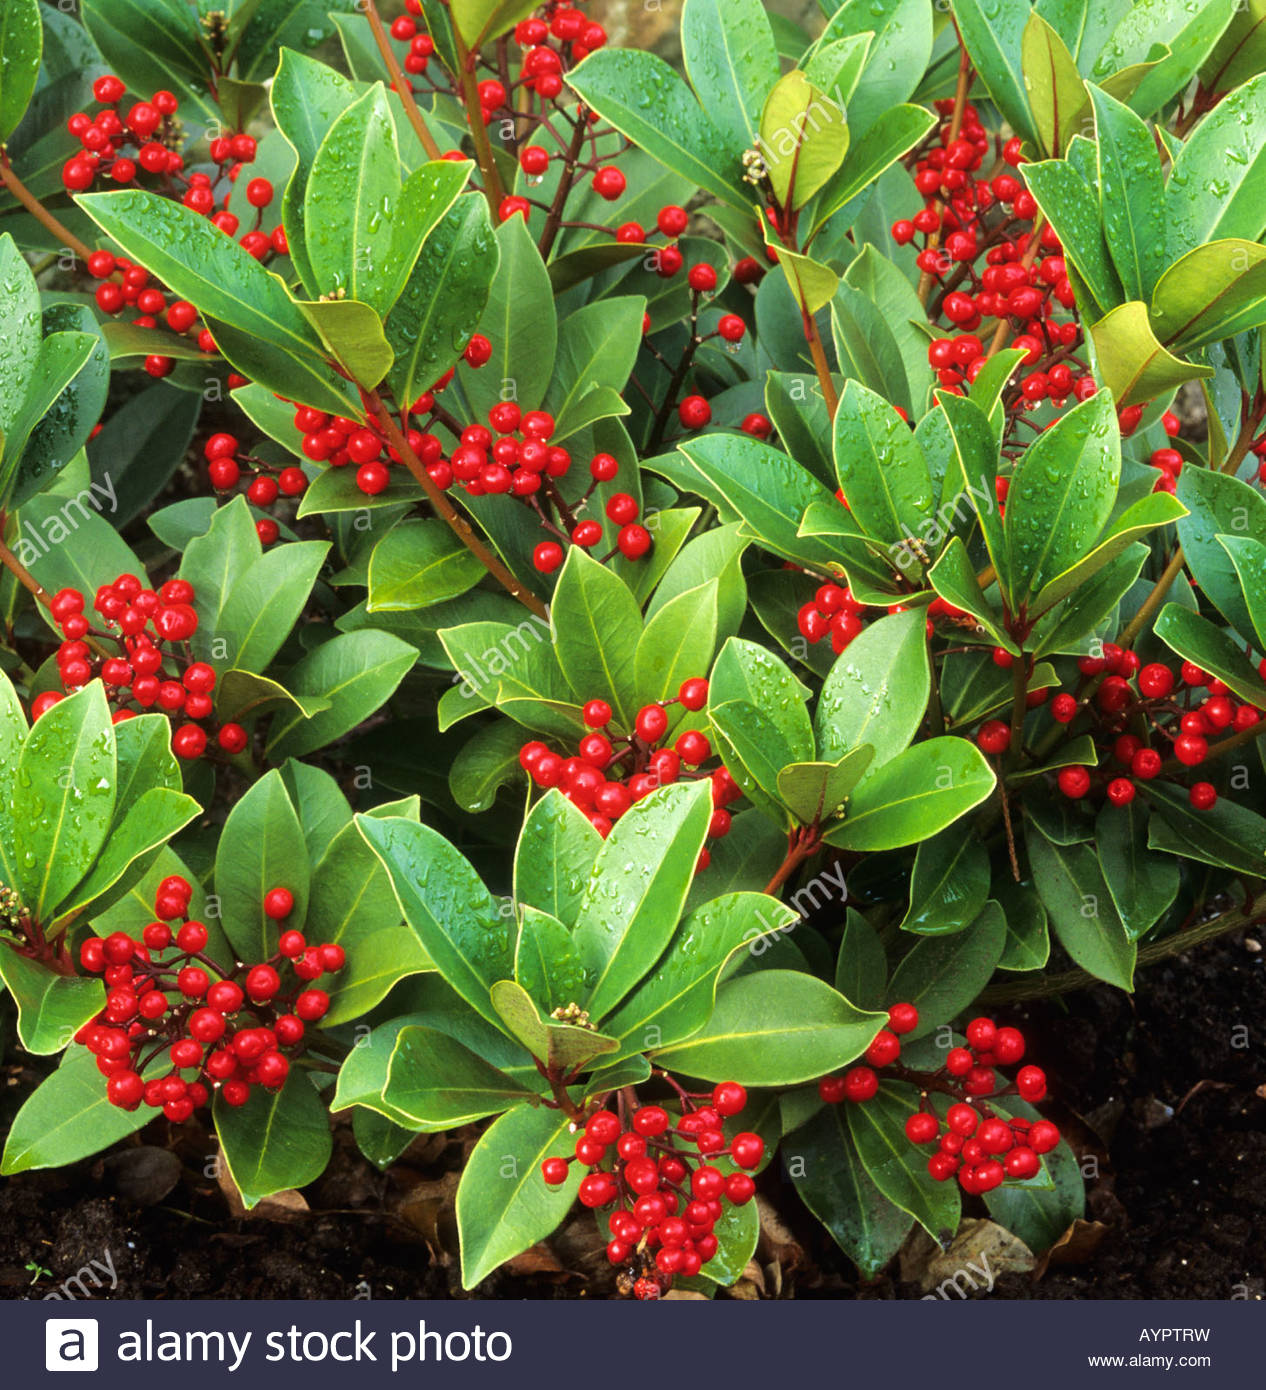 Plant Met Rode Bessen Skimmia Japonica Subsp Reevesiana Stock Photo Royalty